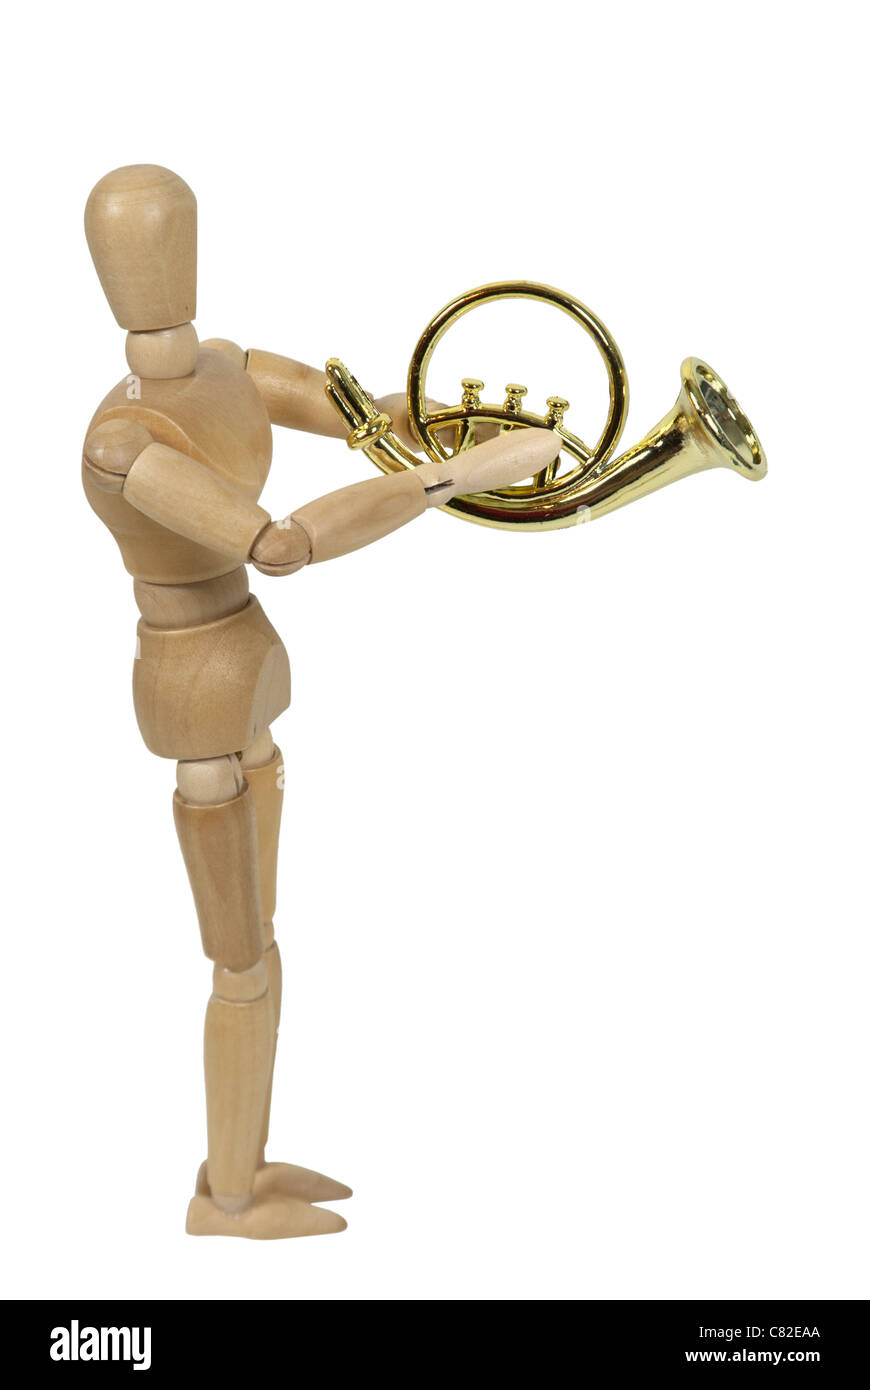 Model playing a shiny simple French Horn - path included - Stock Image